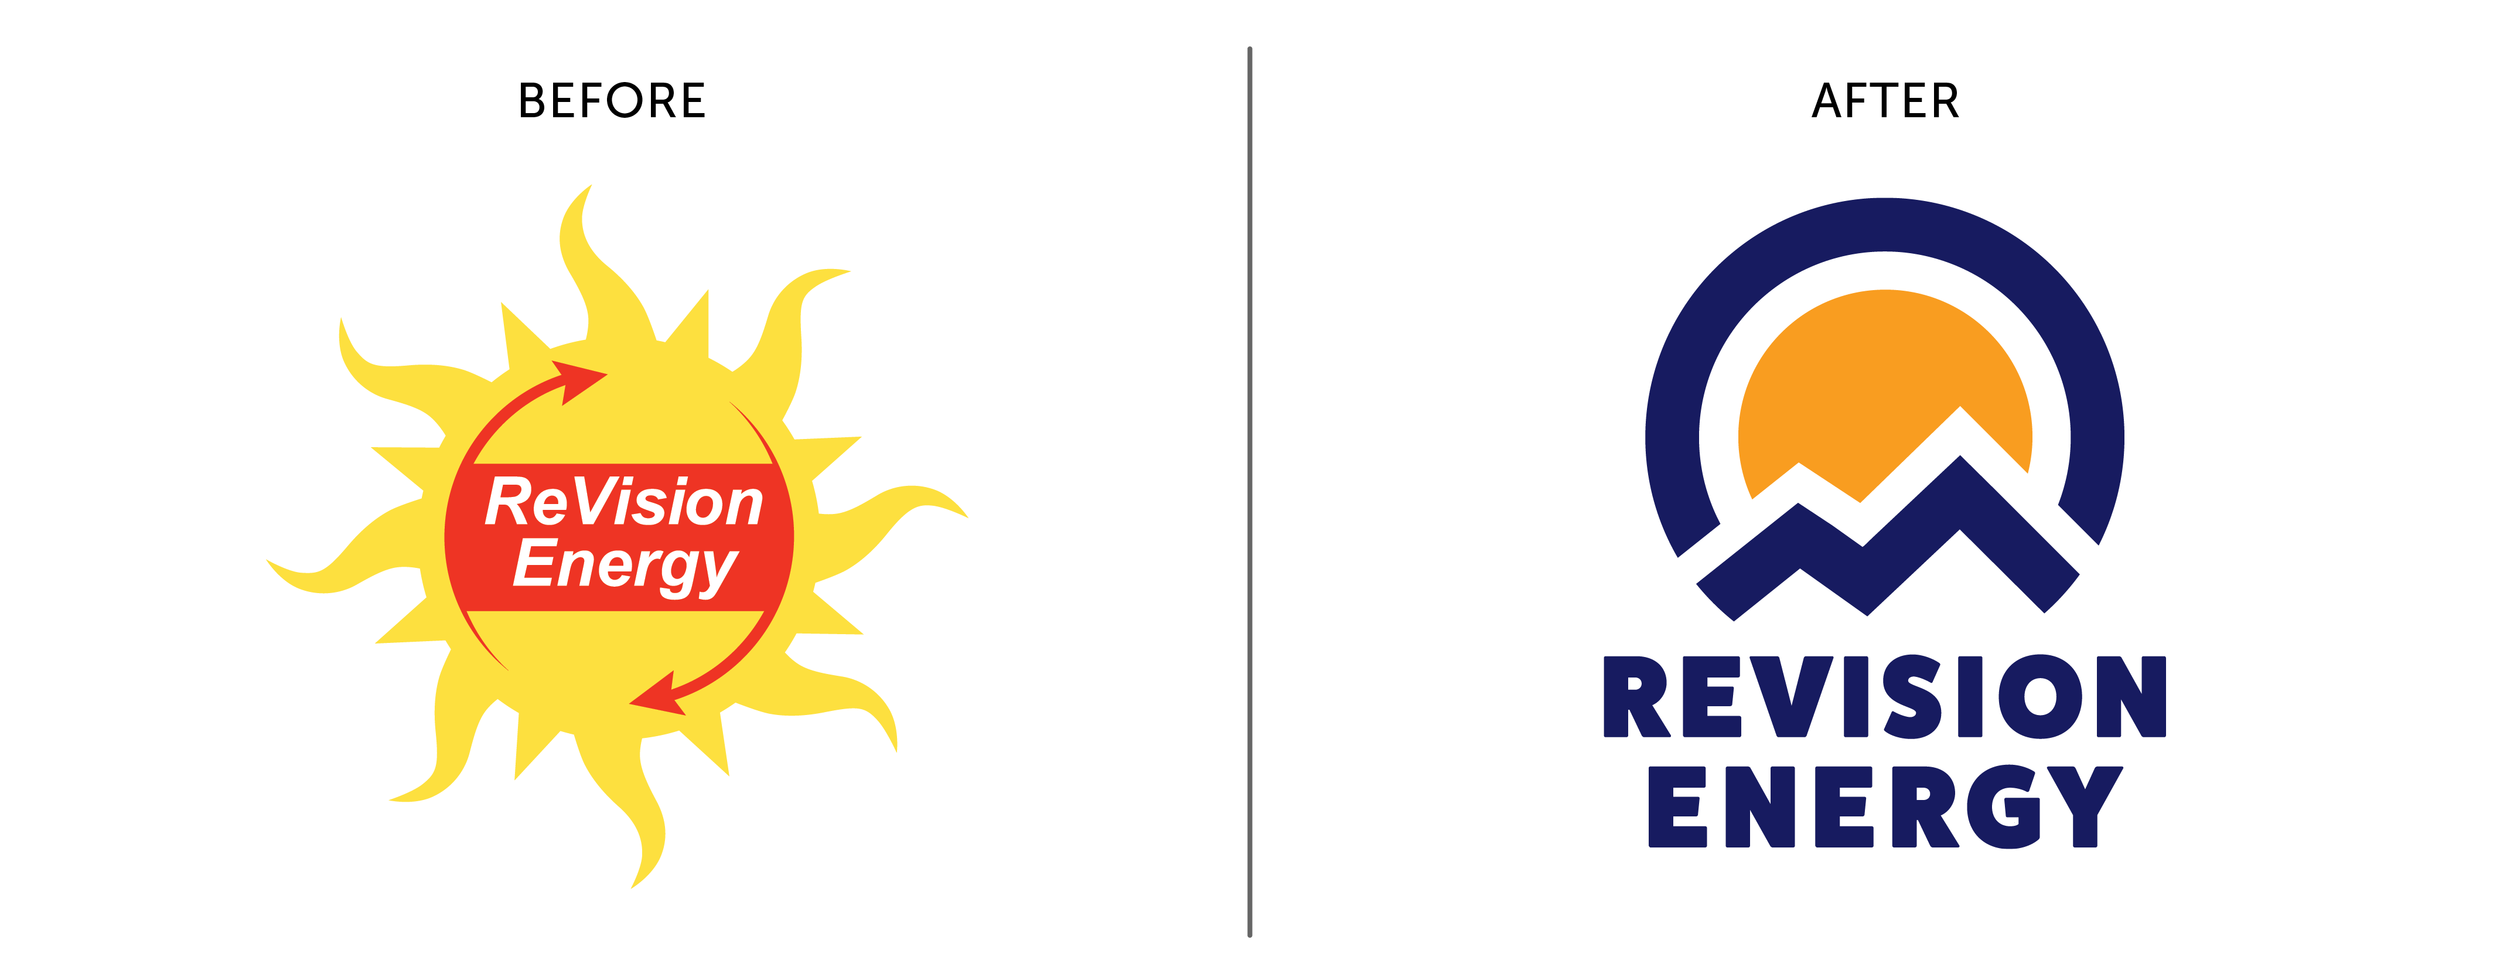 revisionlogo-beforeafter.png